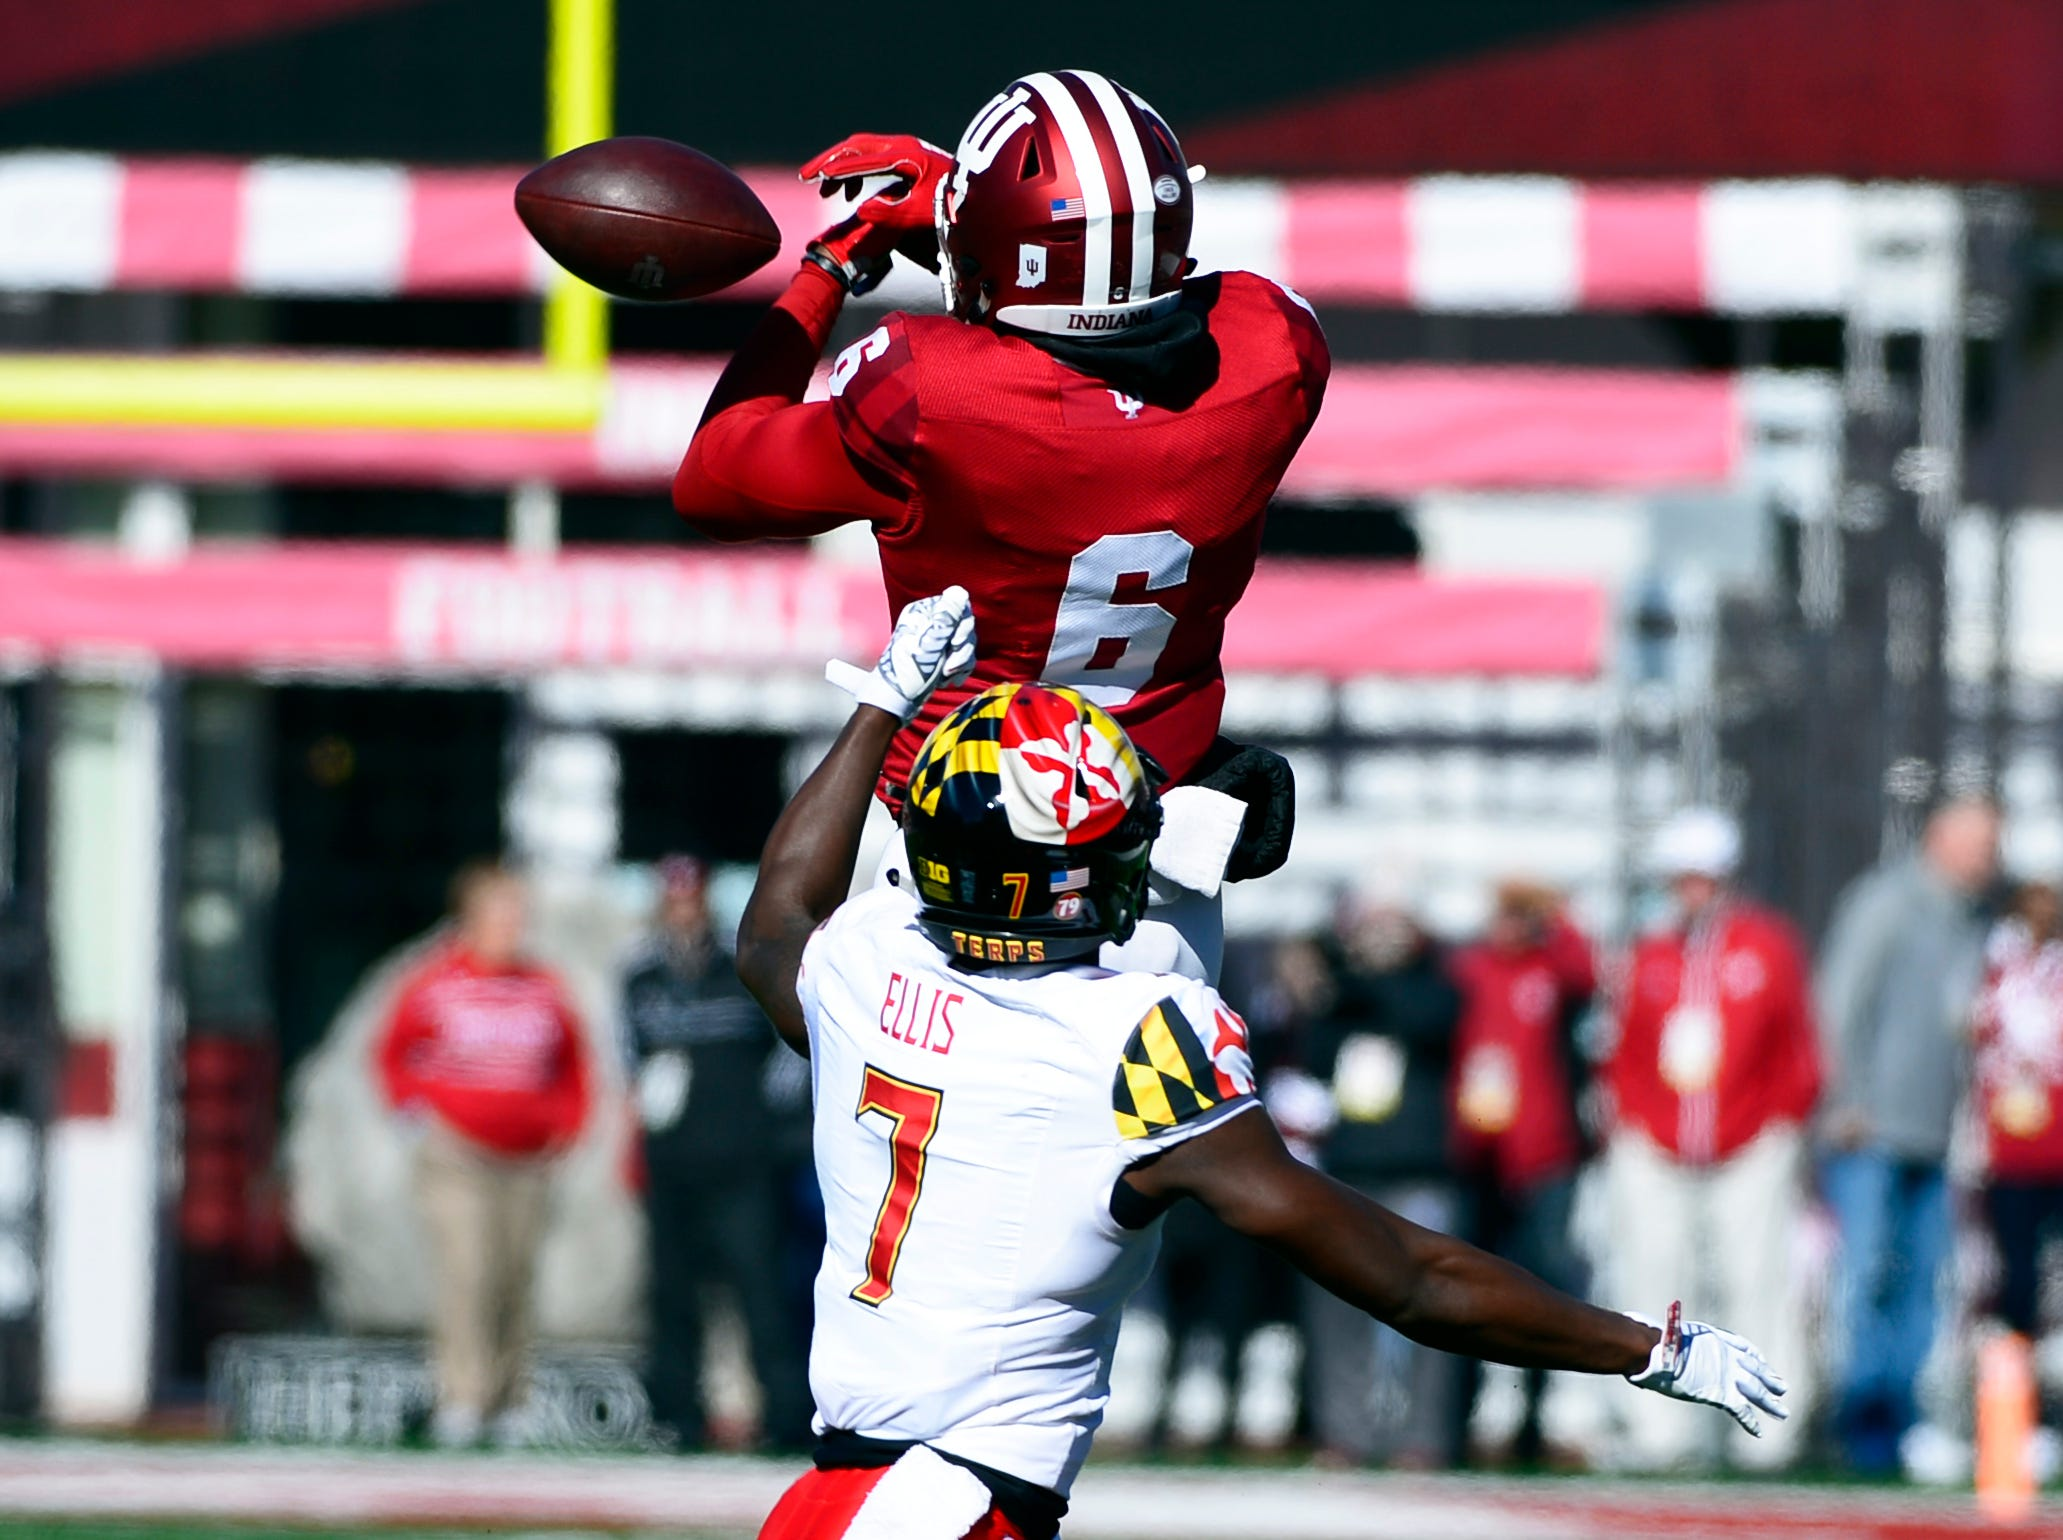 Indiana Hoosiers wide receiver Donovan Hale (6) drops a pass during the game against Maryland at Memorial Stadium in Bloomington, Ind., on Satuday, Nov. 10, 2018.